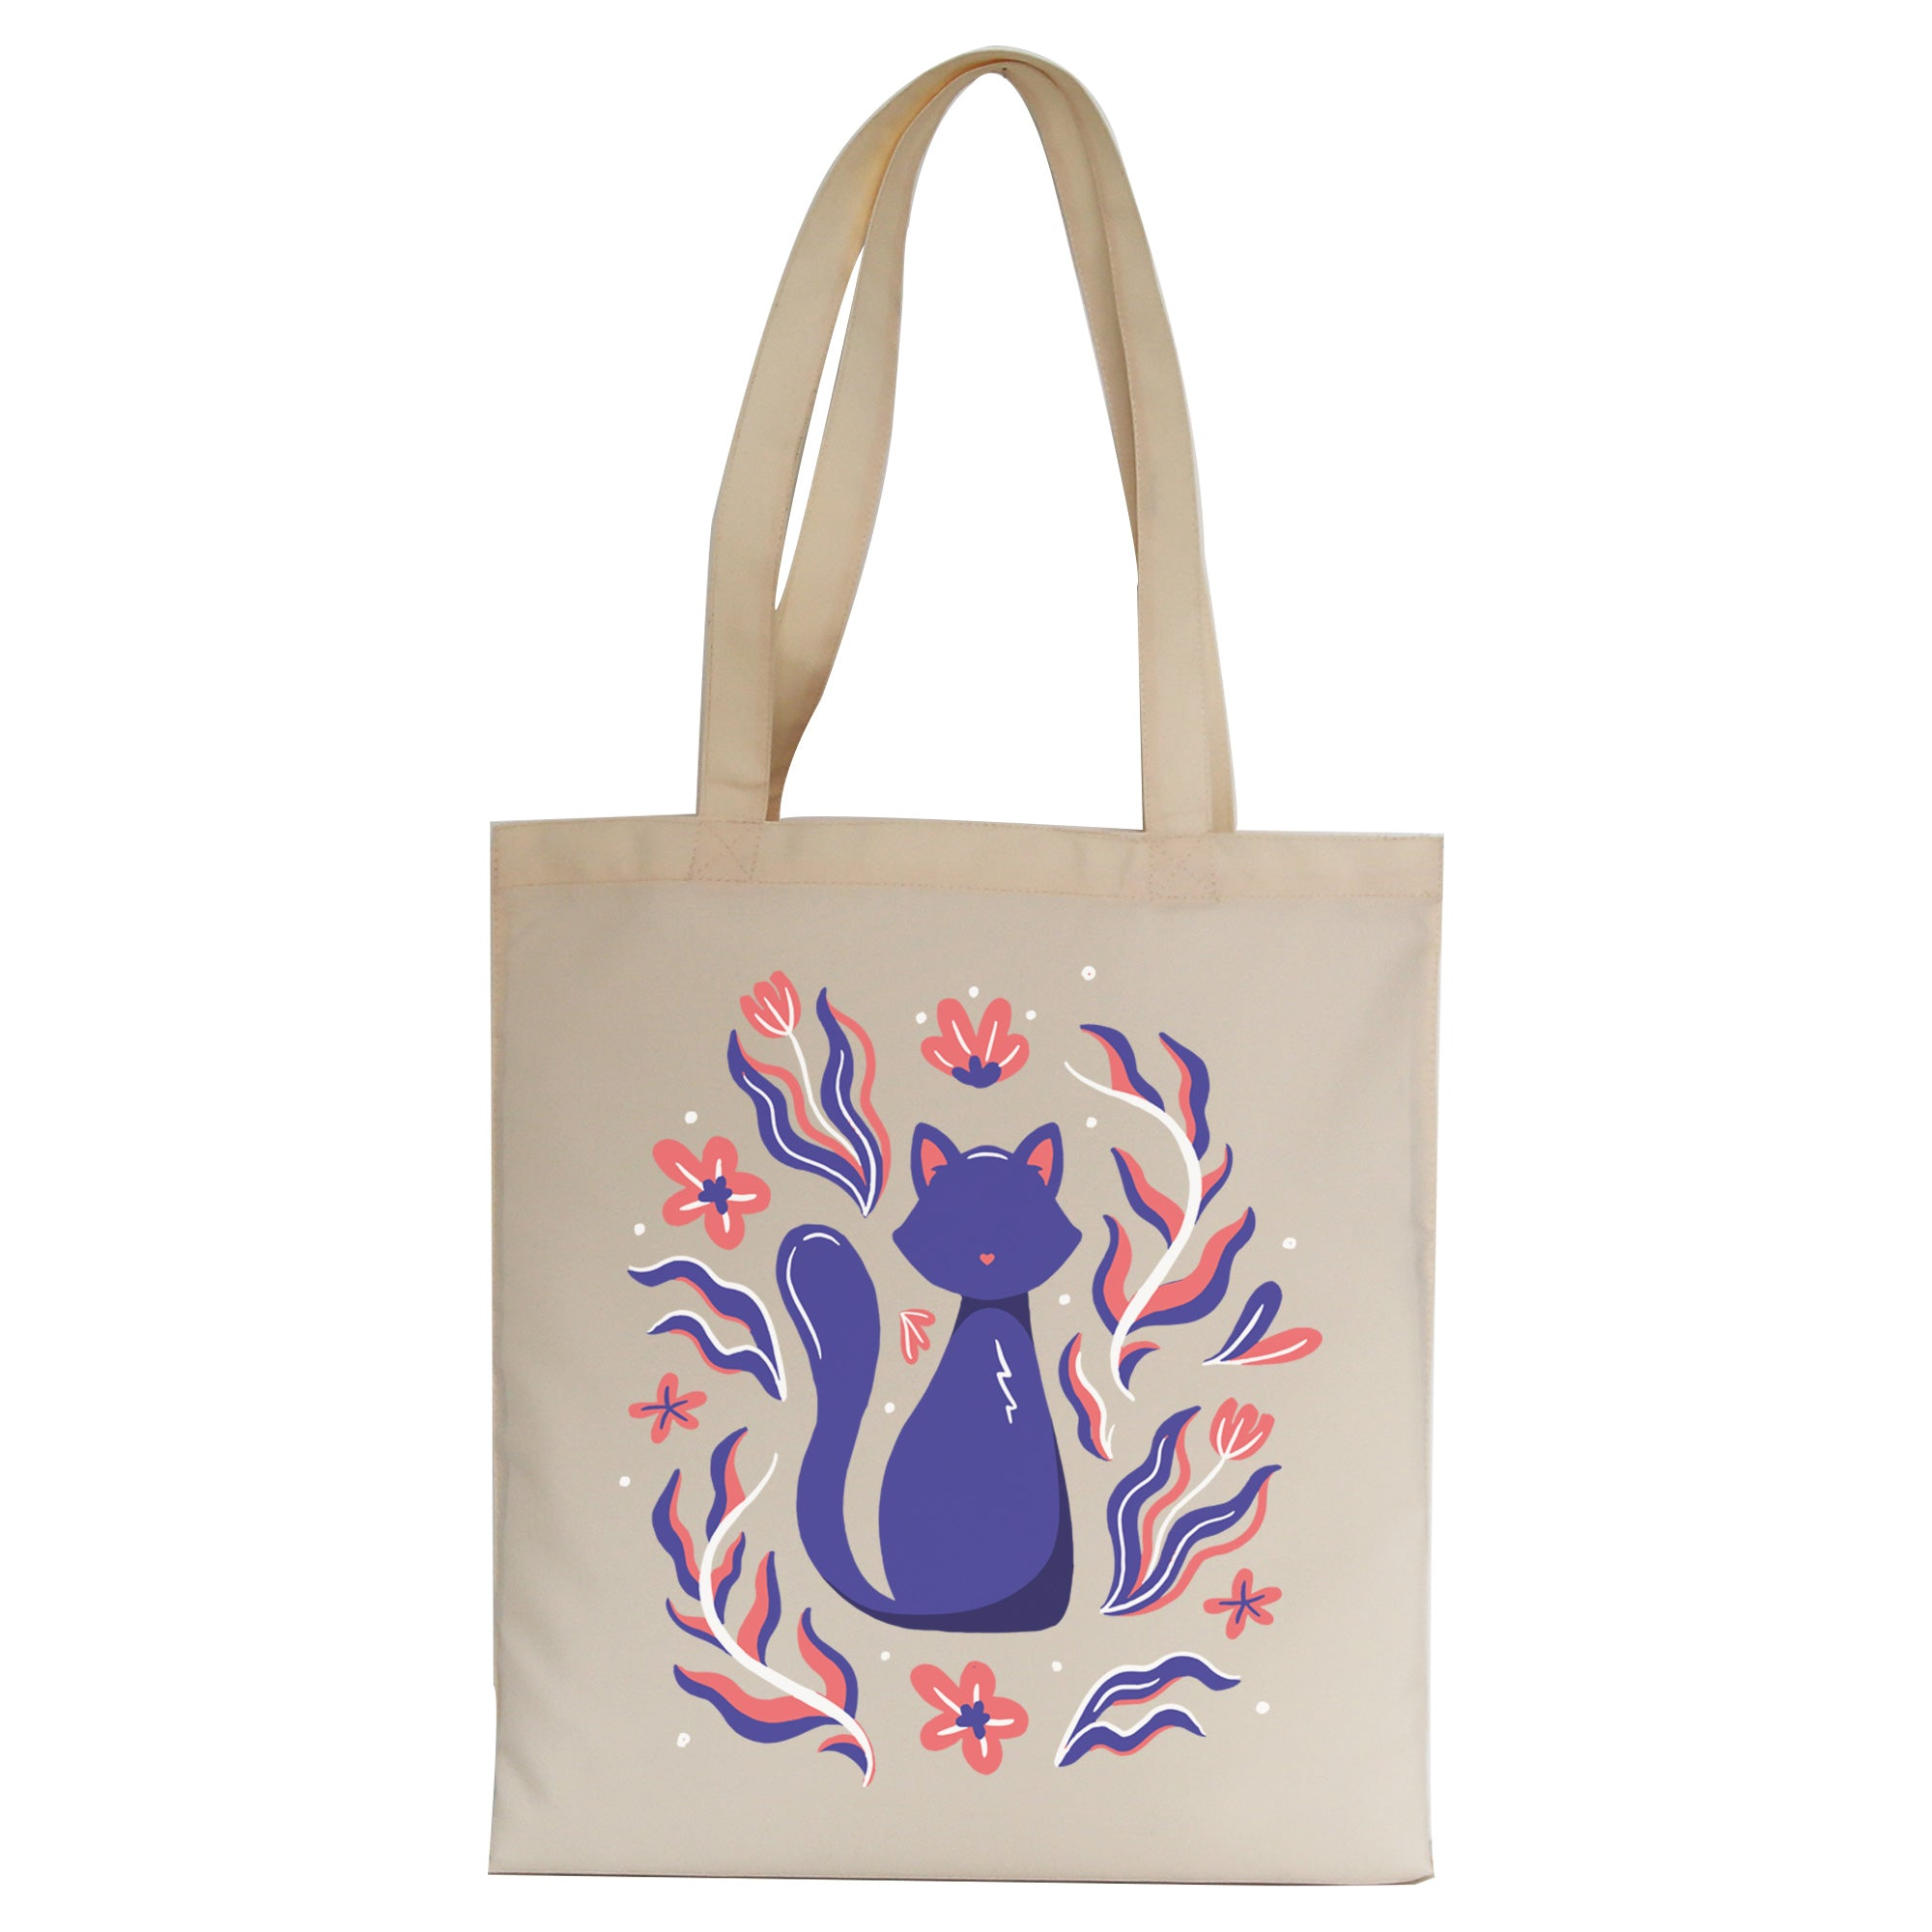 Nature cat illustration tote bag